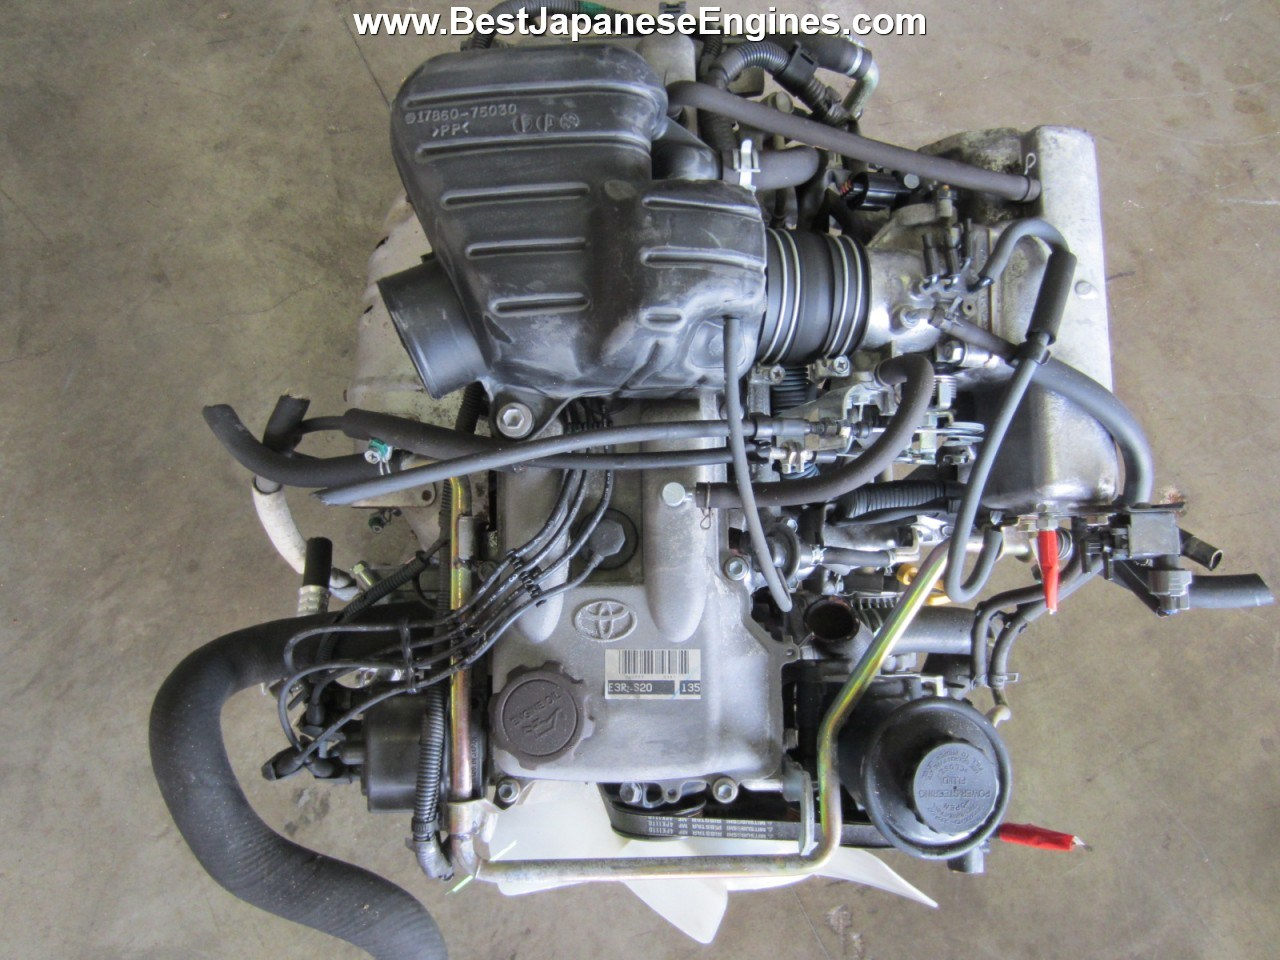 Used Rebuilt Toyota Tacoma Engines